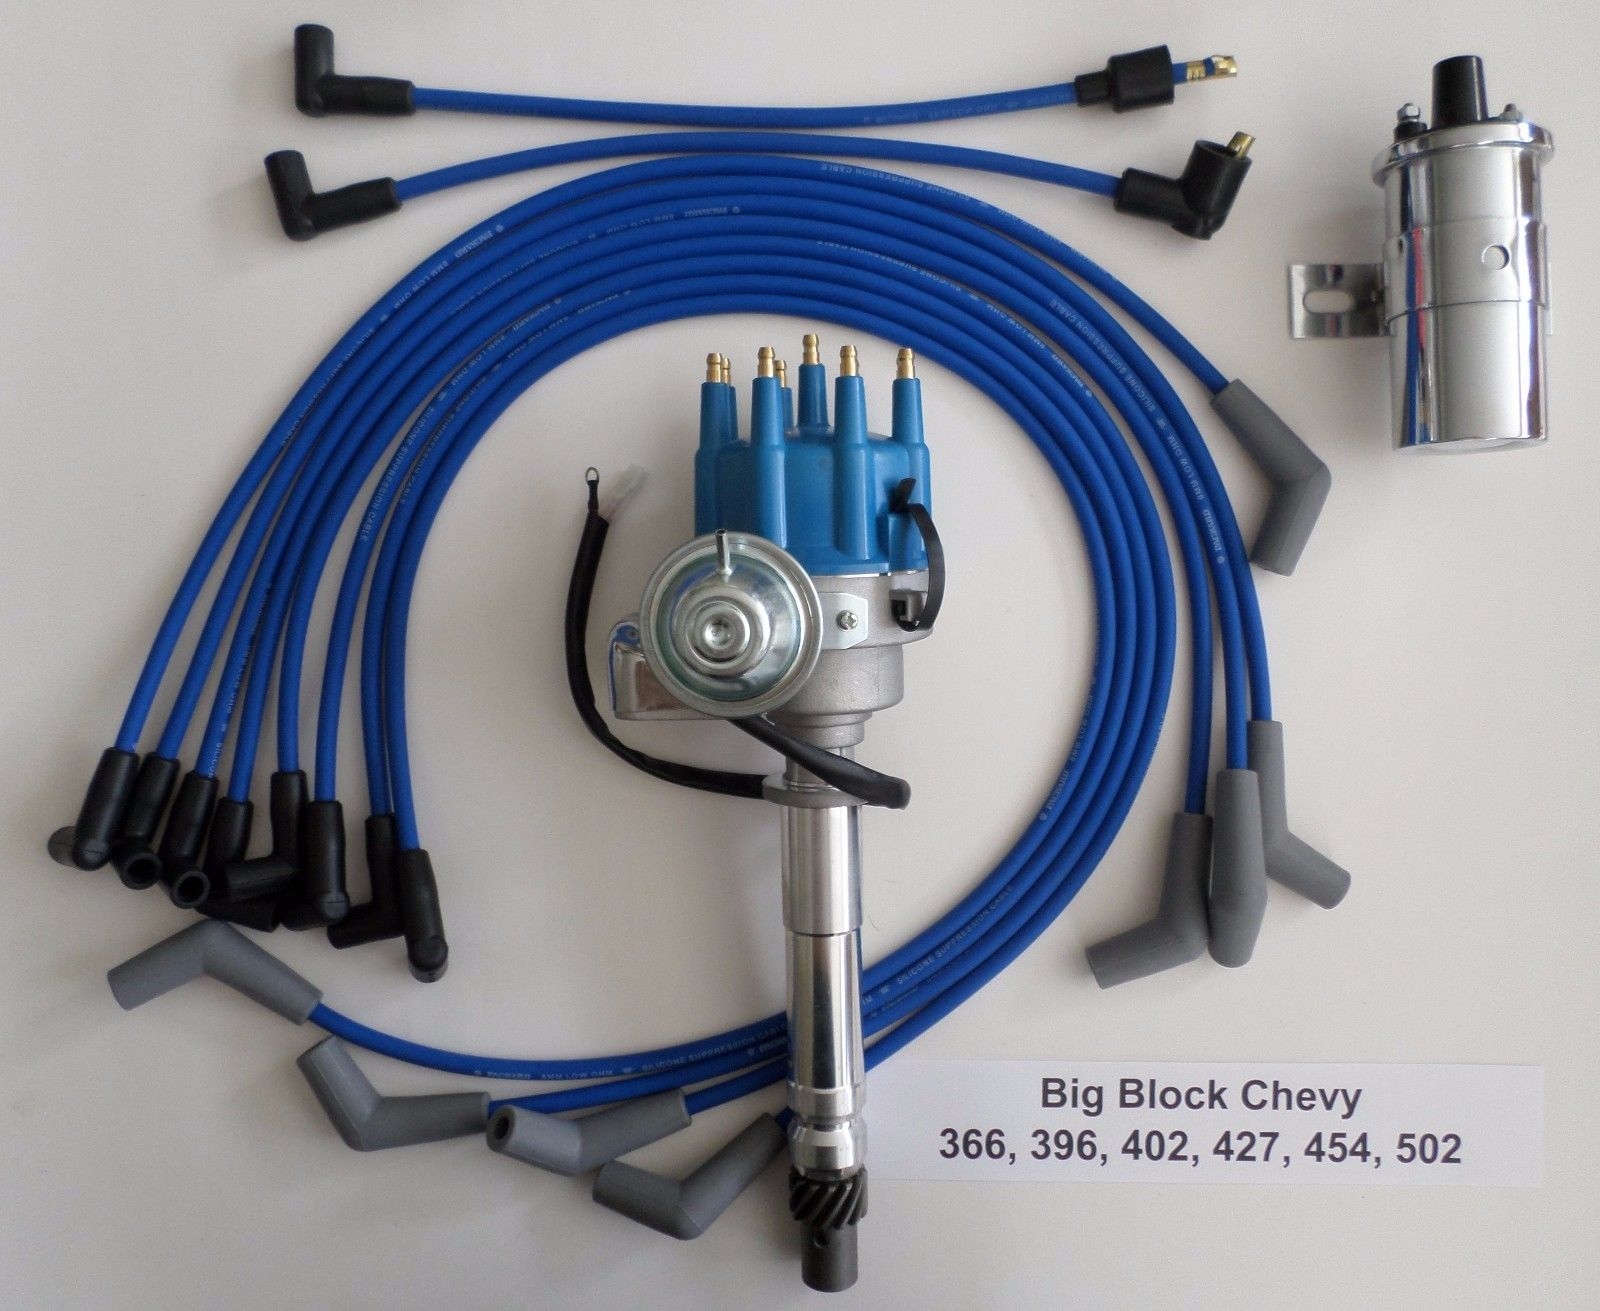 hight resolution of big block chevy 396 427 u0026 454 blue small hei distributor 45k coilsmall block chevy coil